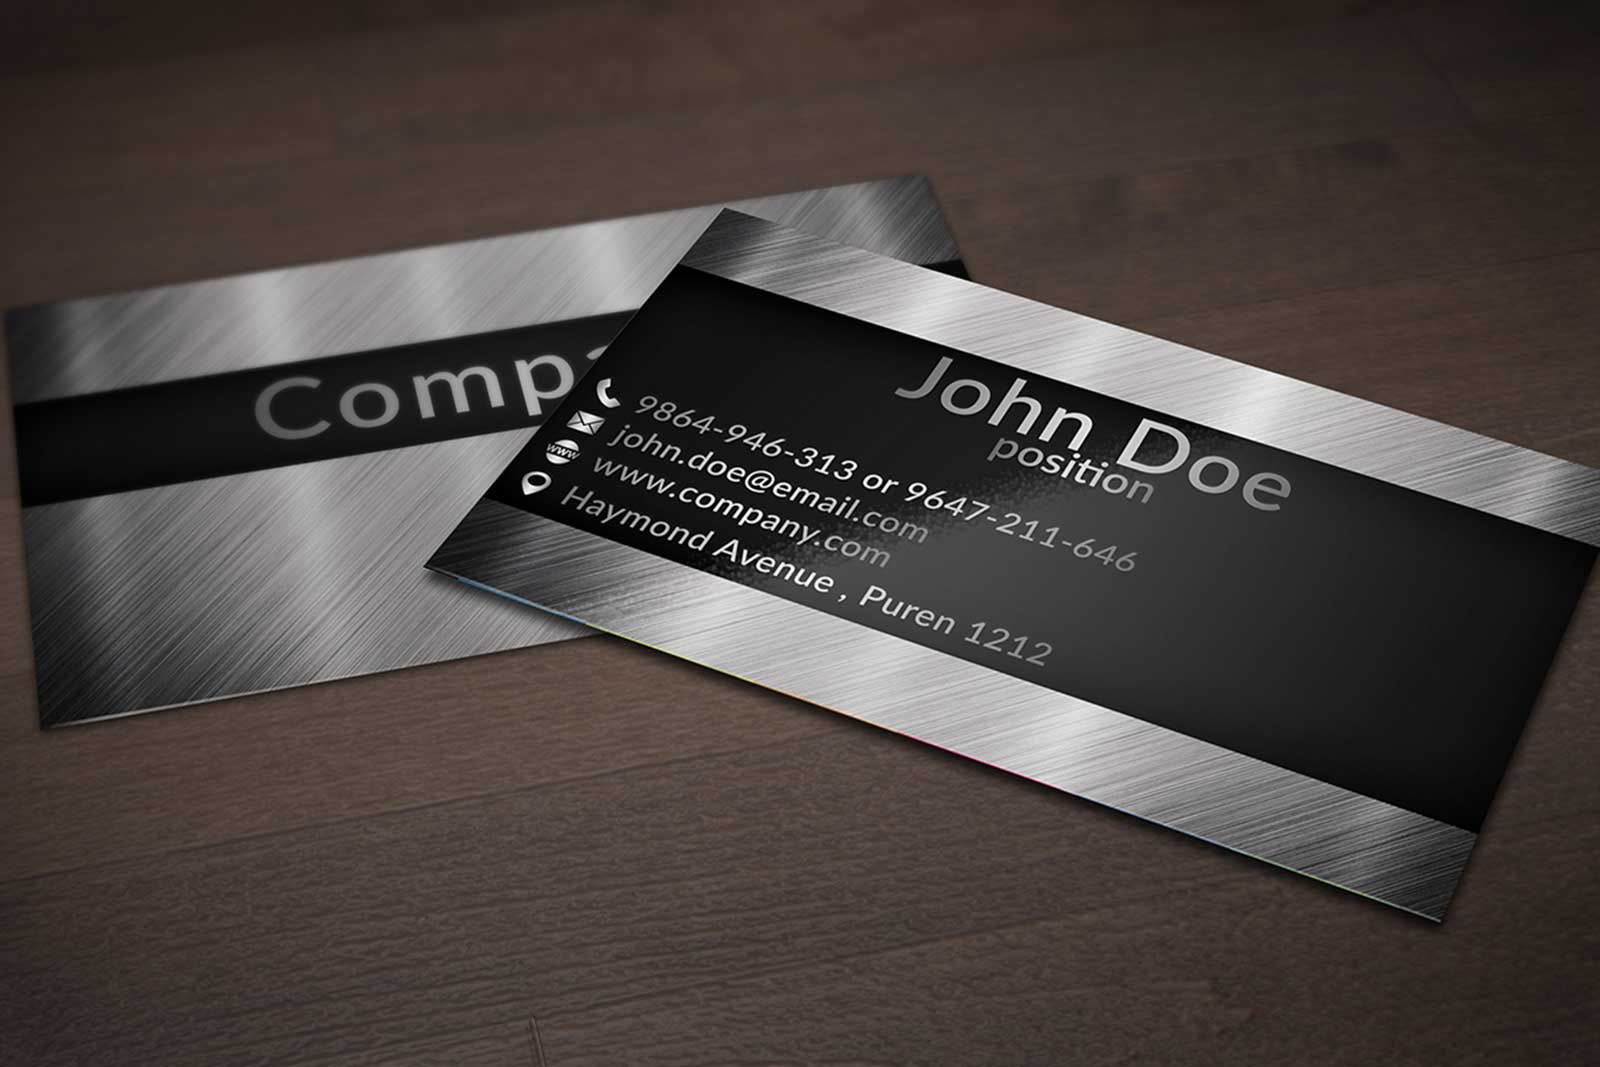 378 best free business cards templates images on pinterest card 378 best free business cards templates images on pinterest card templates adobe photoshop and brow magicingreecefo Images